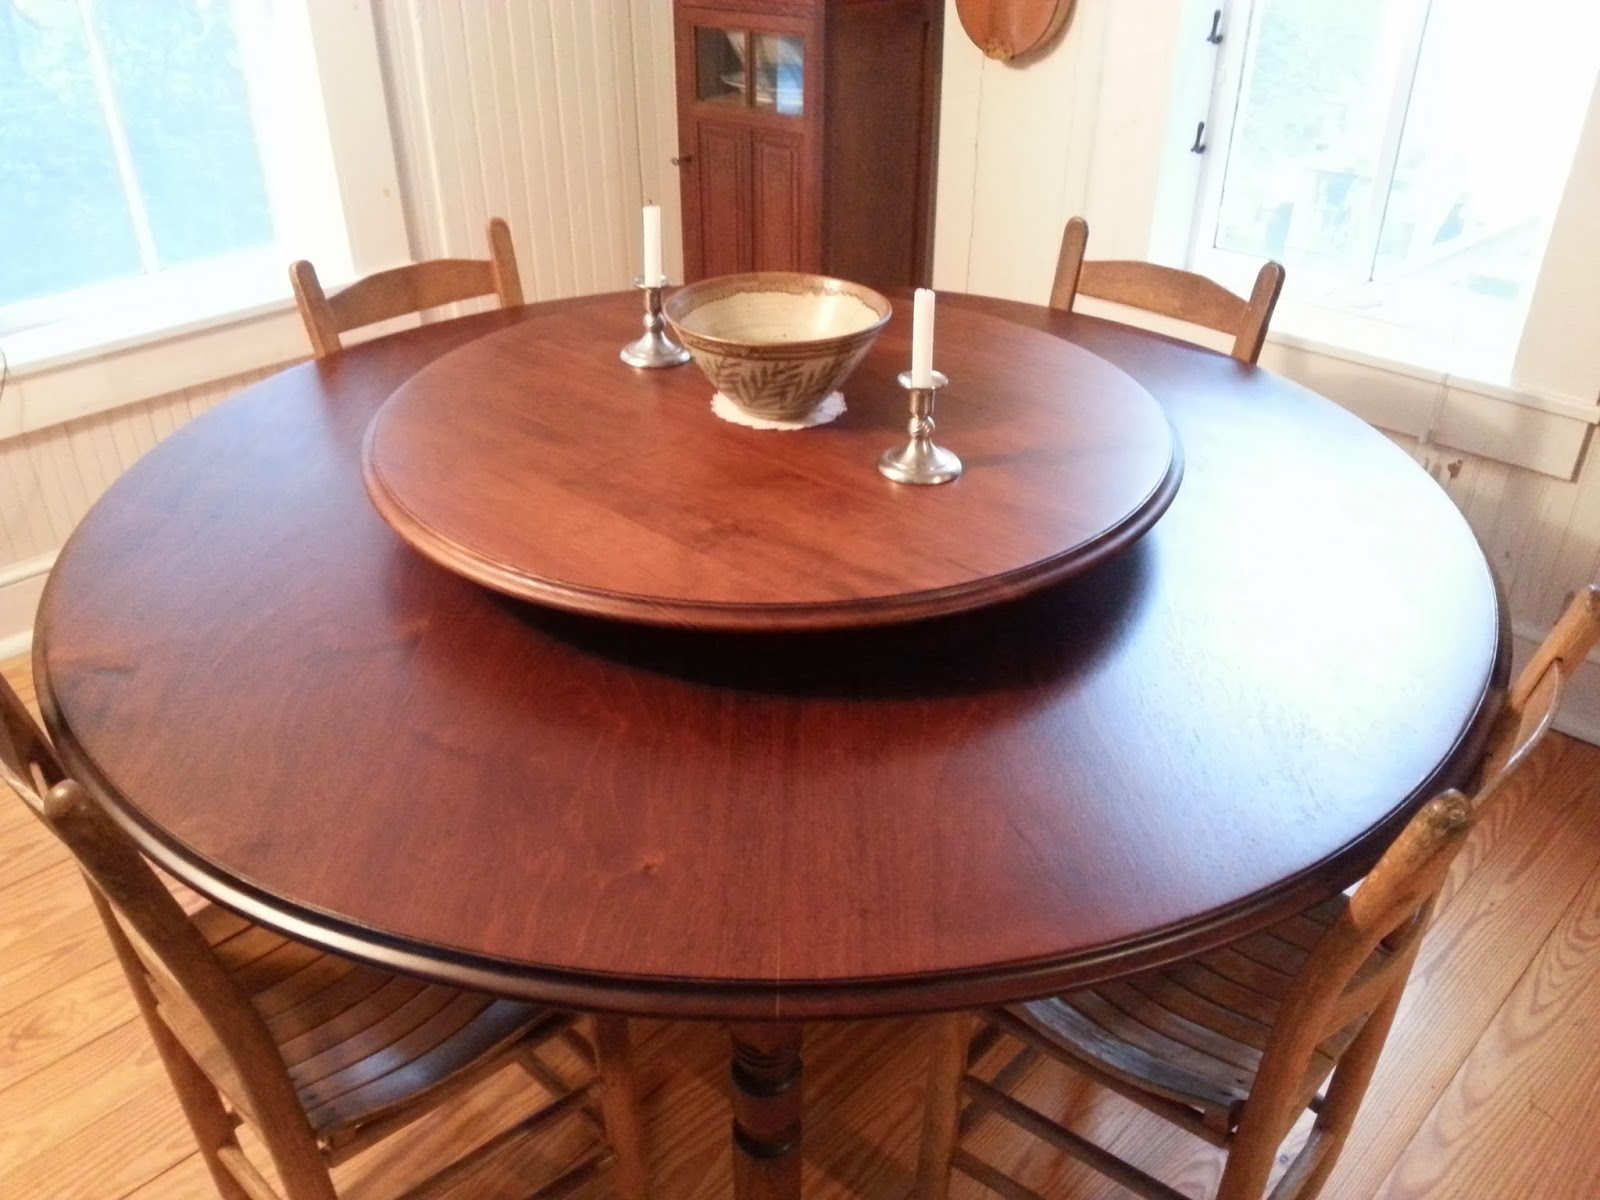 round dining table with lazy susan. In 2011 I Mentioned Lazy Susan Tables My Article About Sam Jones. Wrote, \ Round Dining Table With N